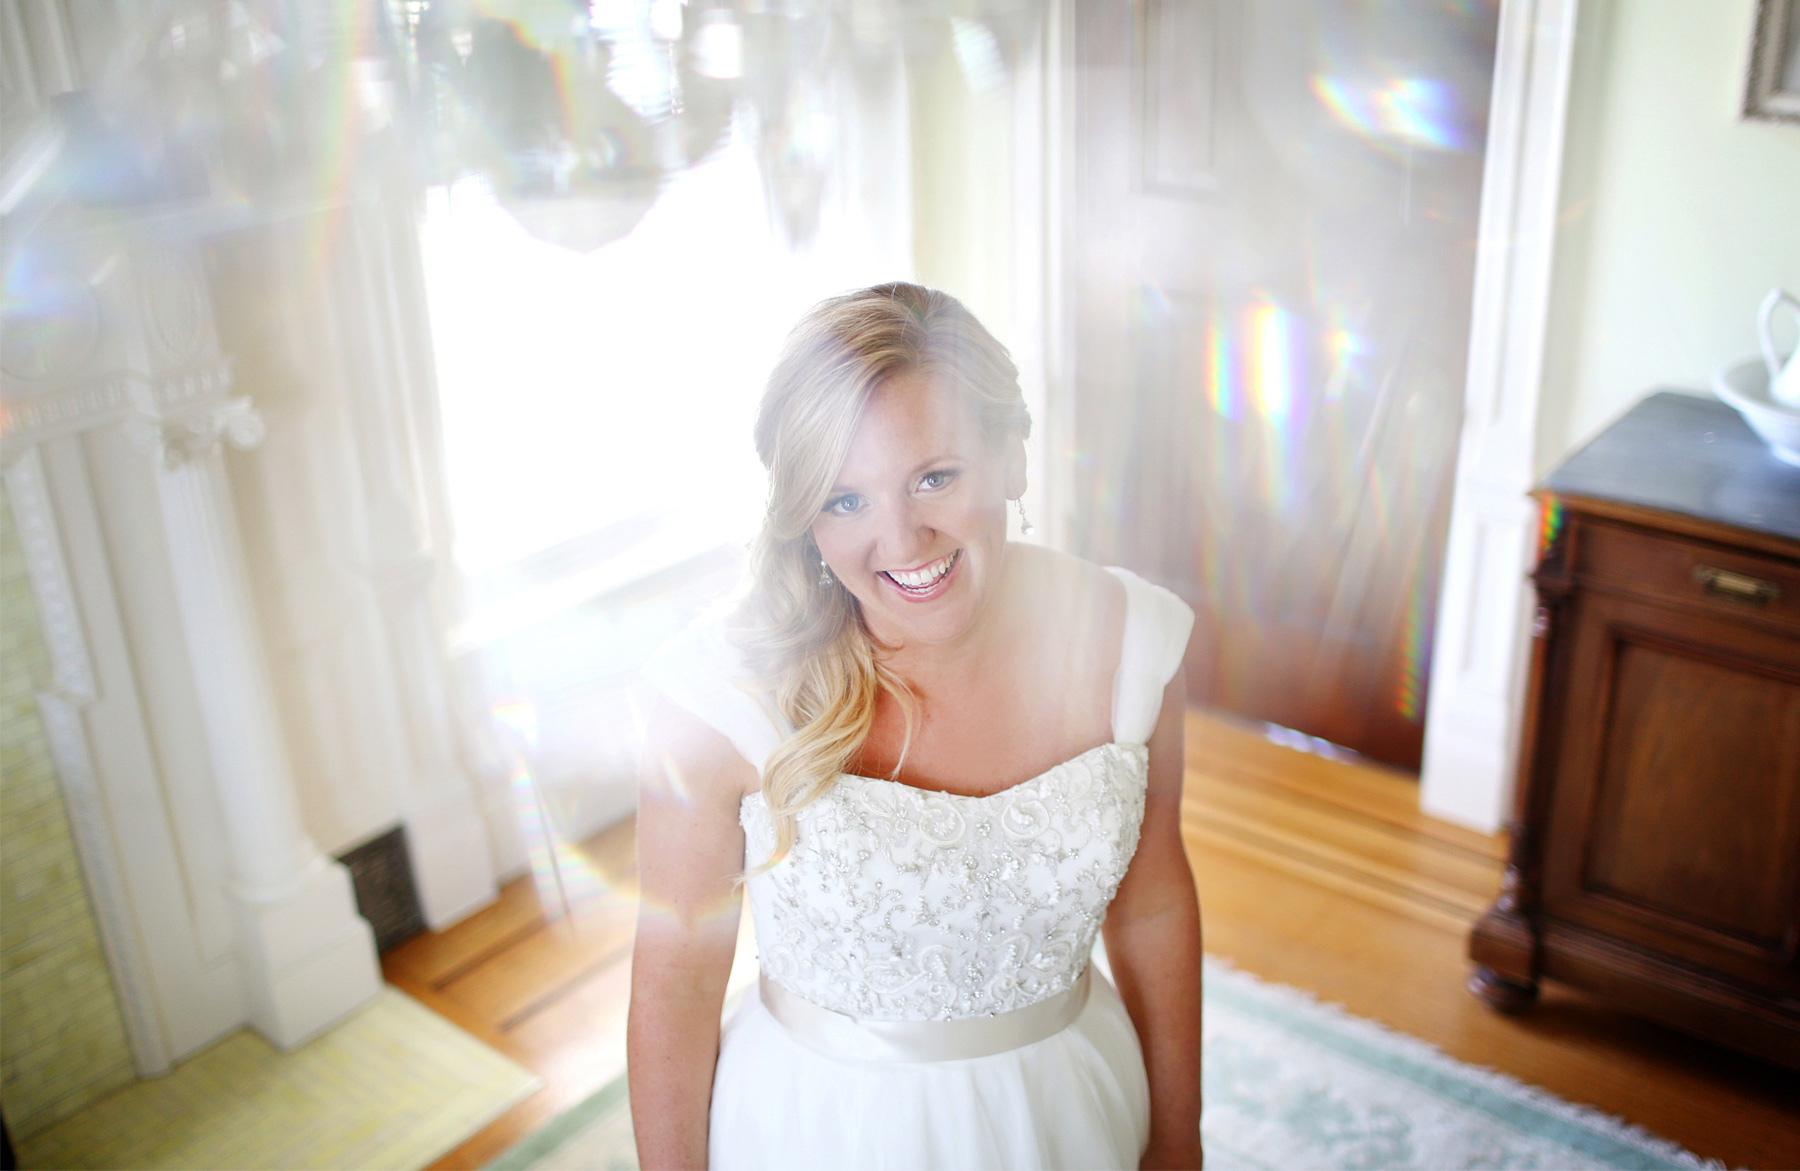 03-Minneapolis-Minnesota-Wedding-Photography-by-Vick-Photography-Van-Dusen-Mansion-Wedding-Dress-Taryn-&-Scott.jpg